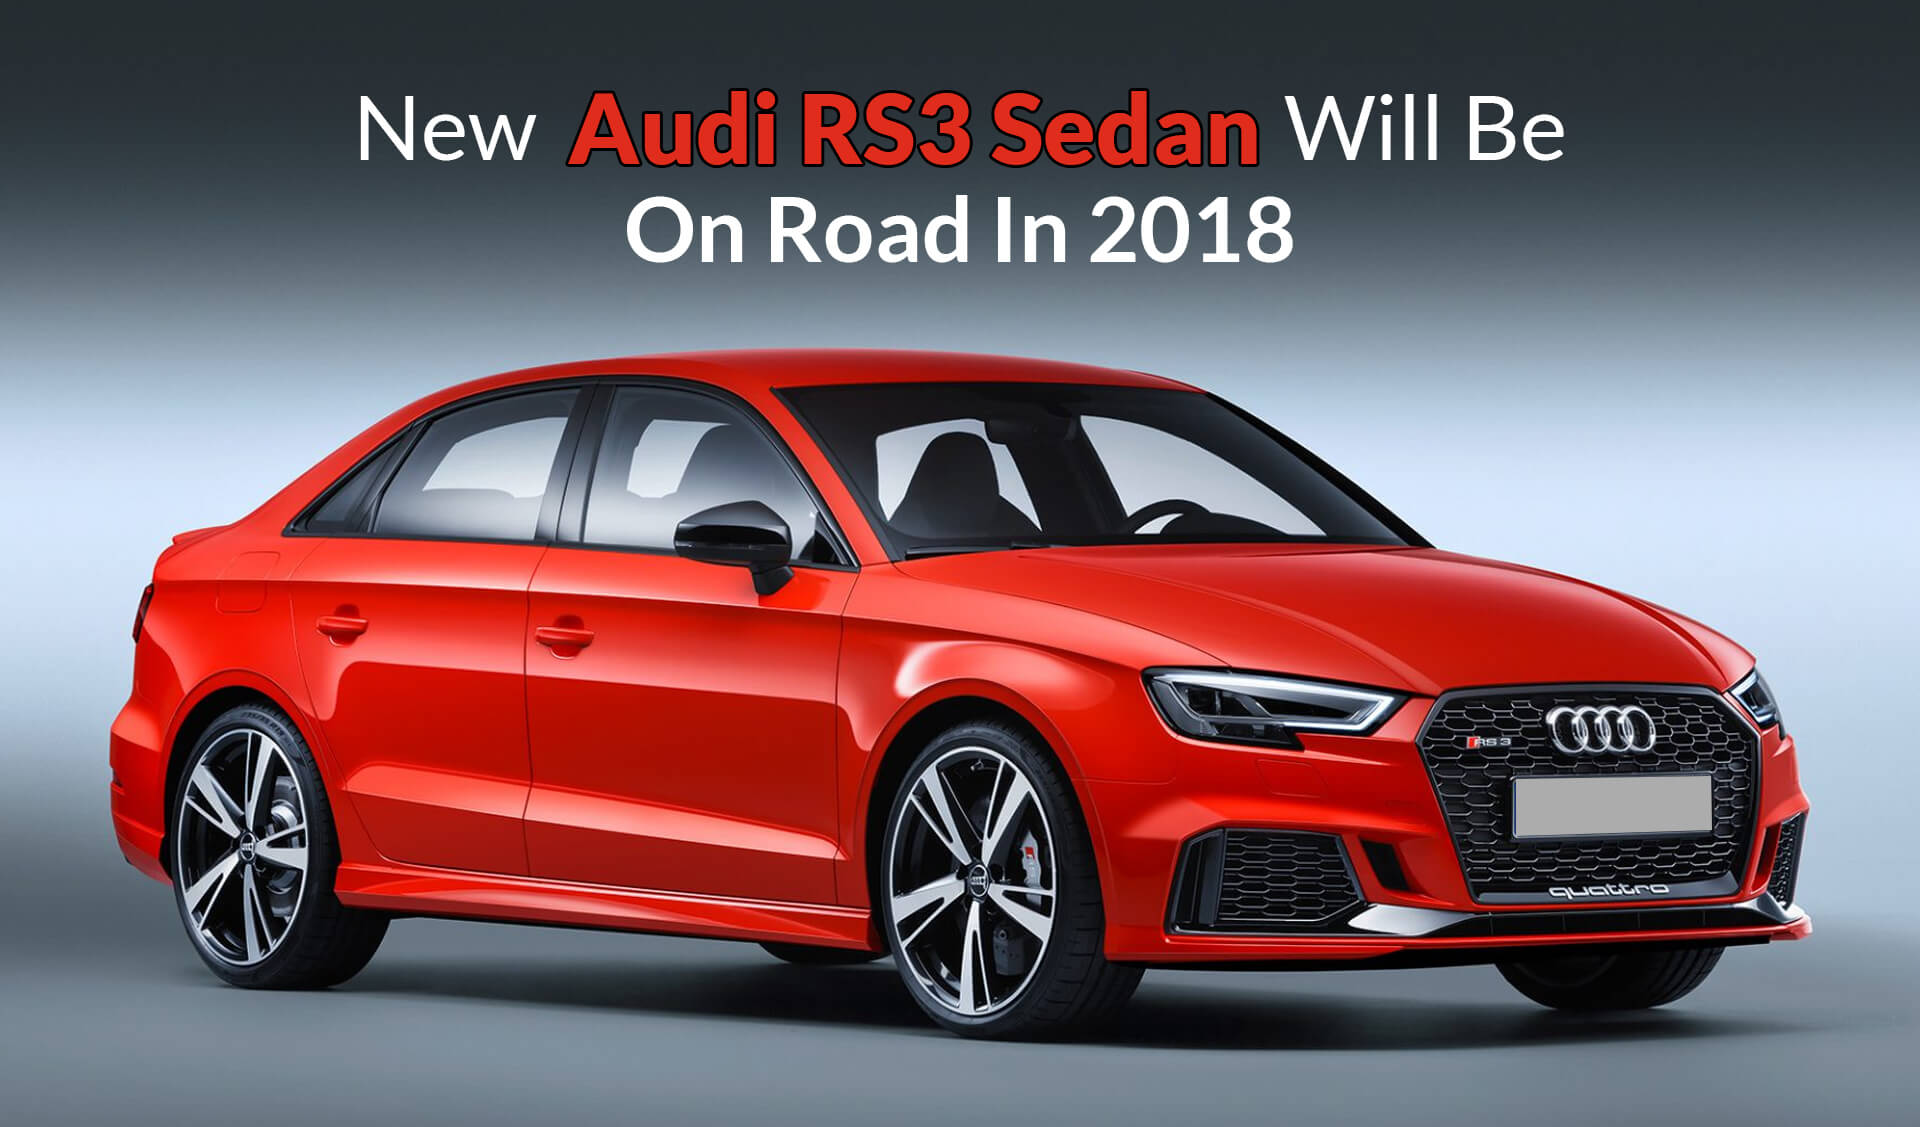 New Audi RS3 Sedan Will Be Launch In 2018